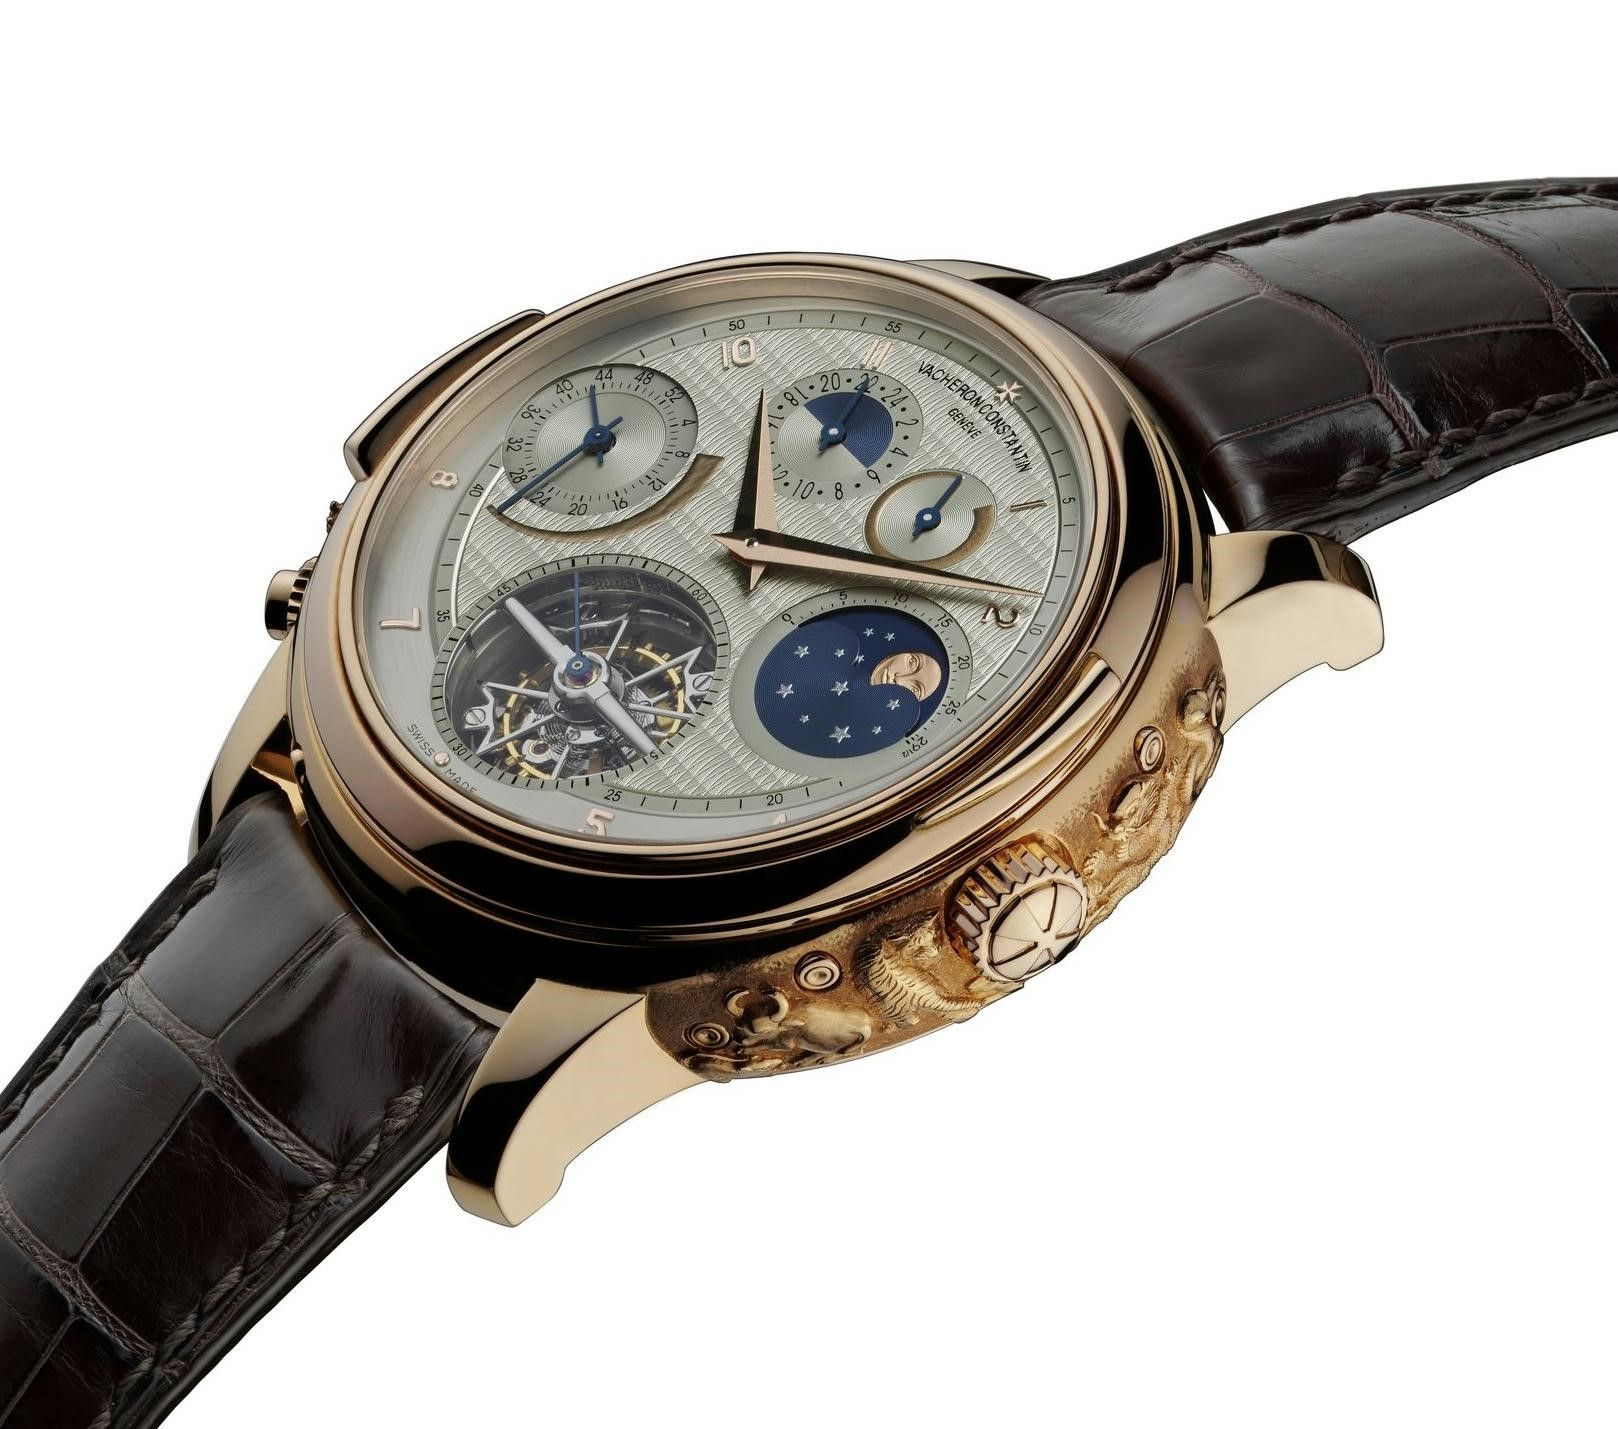 Image Result For Watch With Star Map Pipes Pinterest - Star map watch